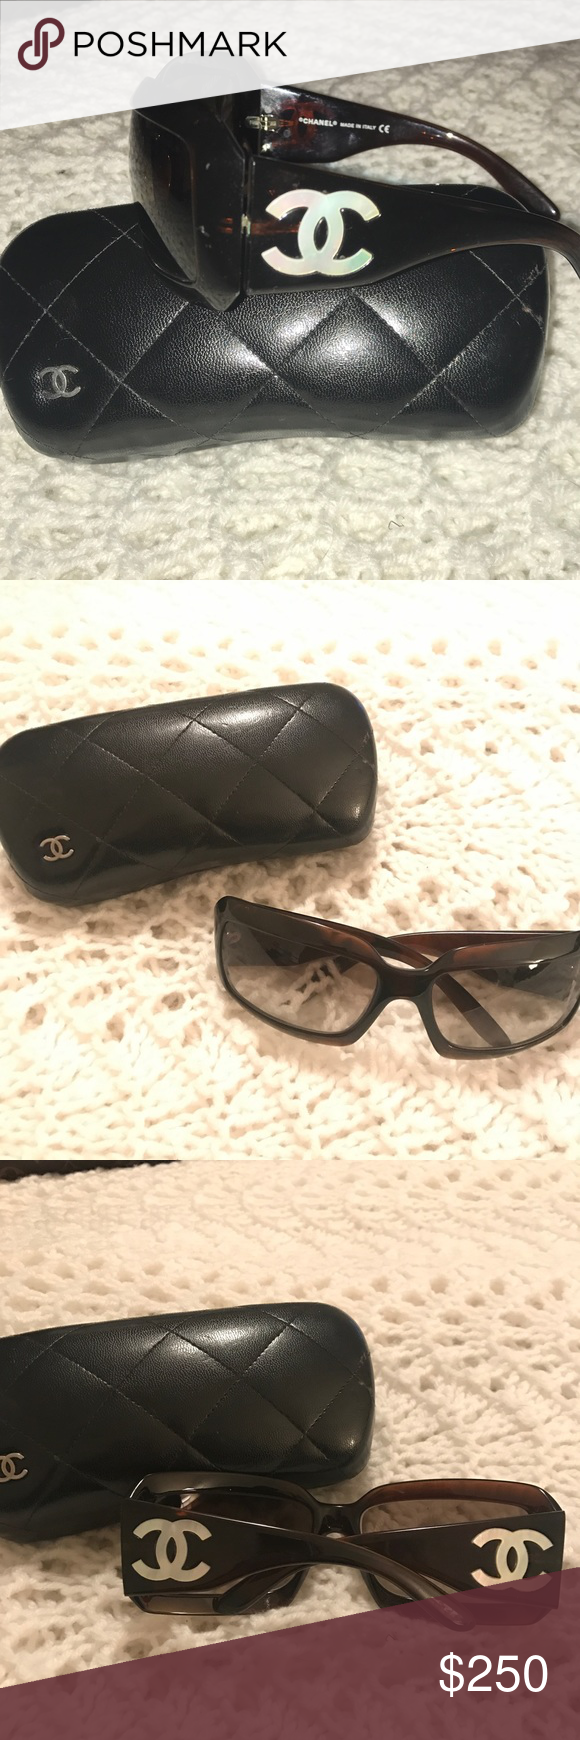 5994fd5886a Chanel Mother of Pearl CC Tortoise Shell Sunglasse 100% Authentic Excellent  Condition Gently Used CHANEL Women s Tortoise Shell Sunglasses with Mother  of ...